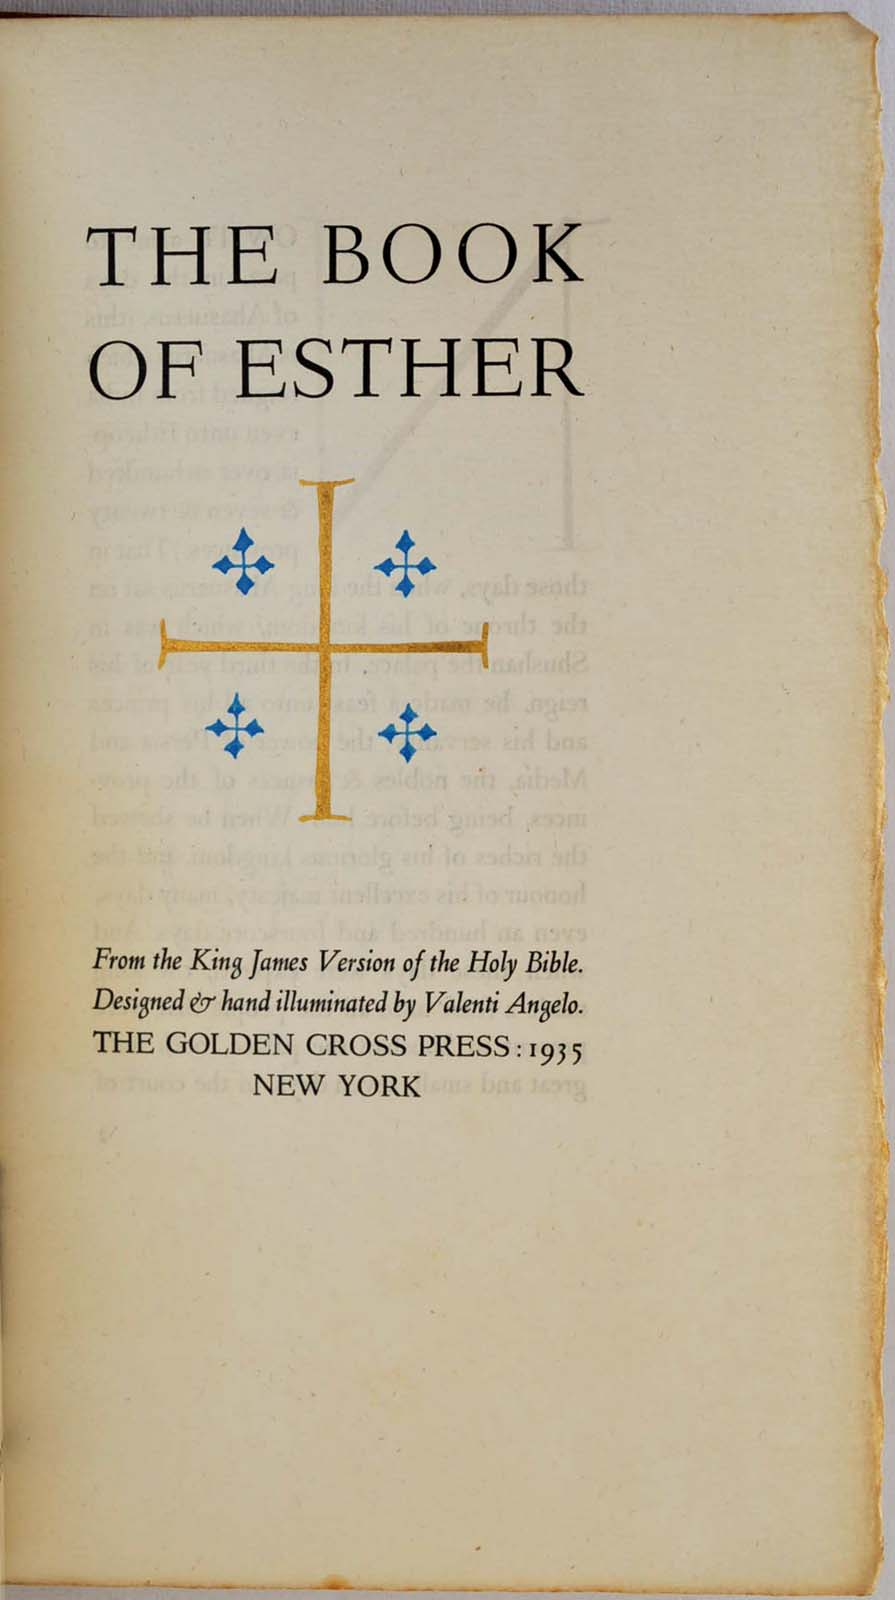 the book of esther from the king james version of the holy bible